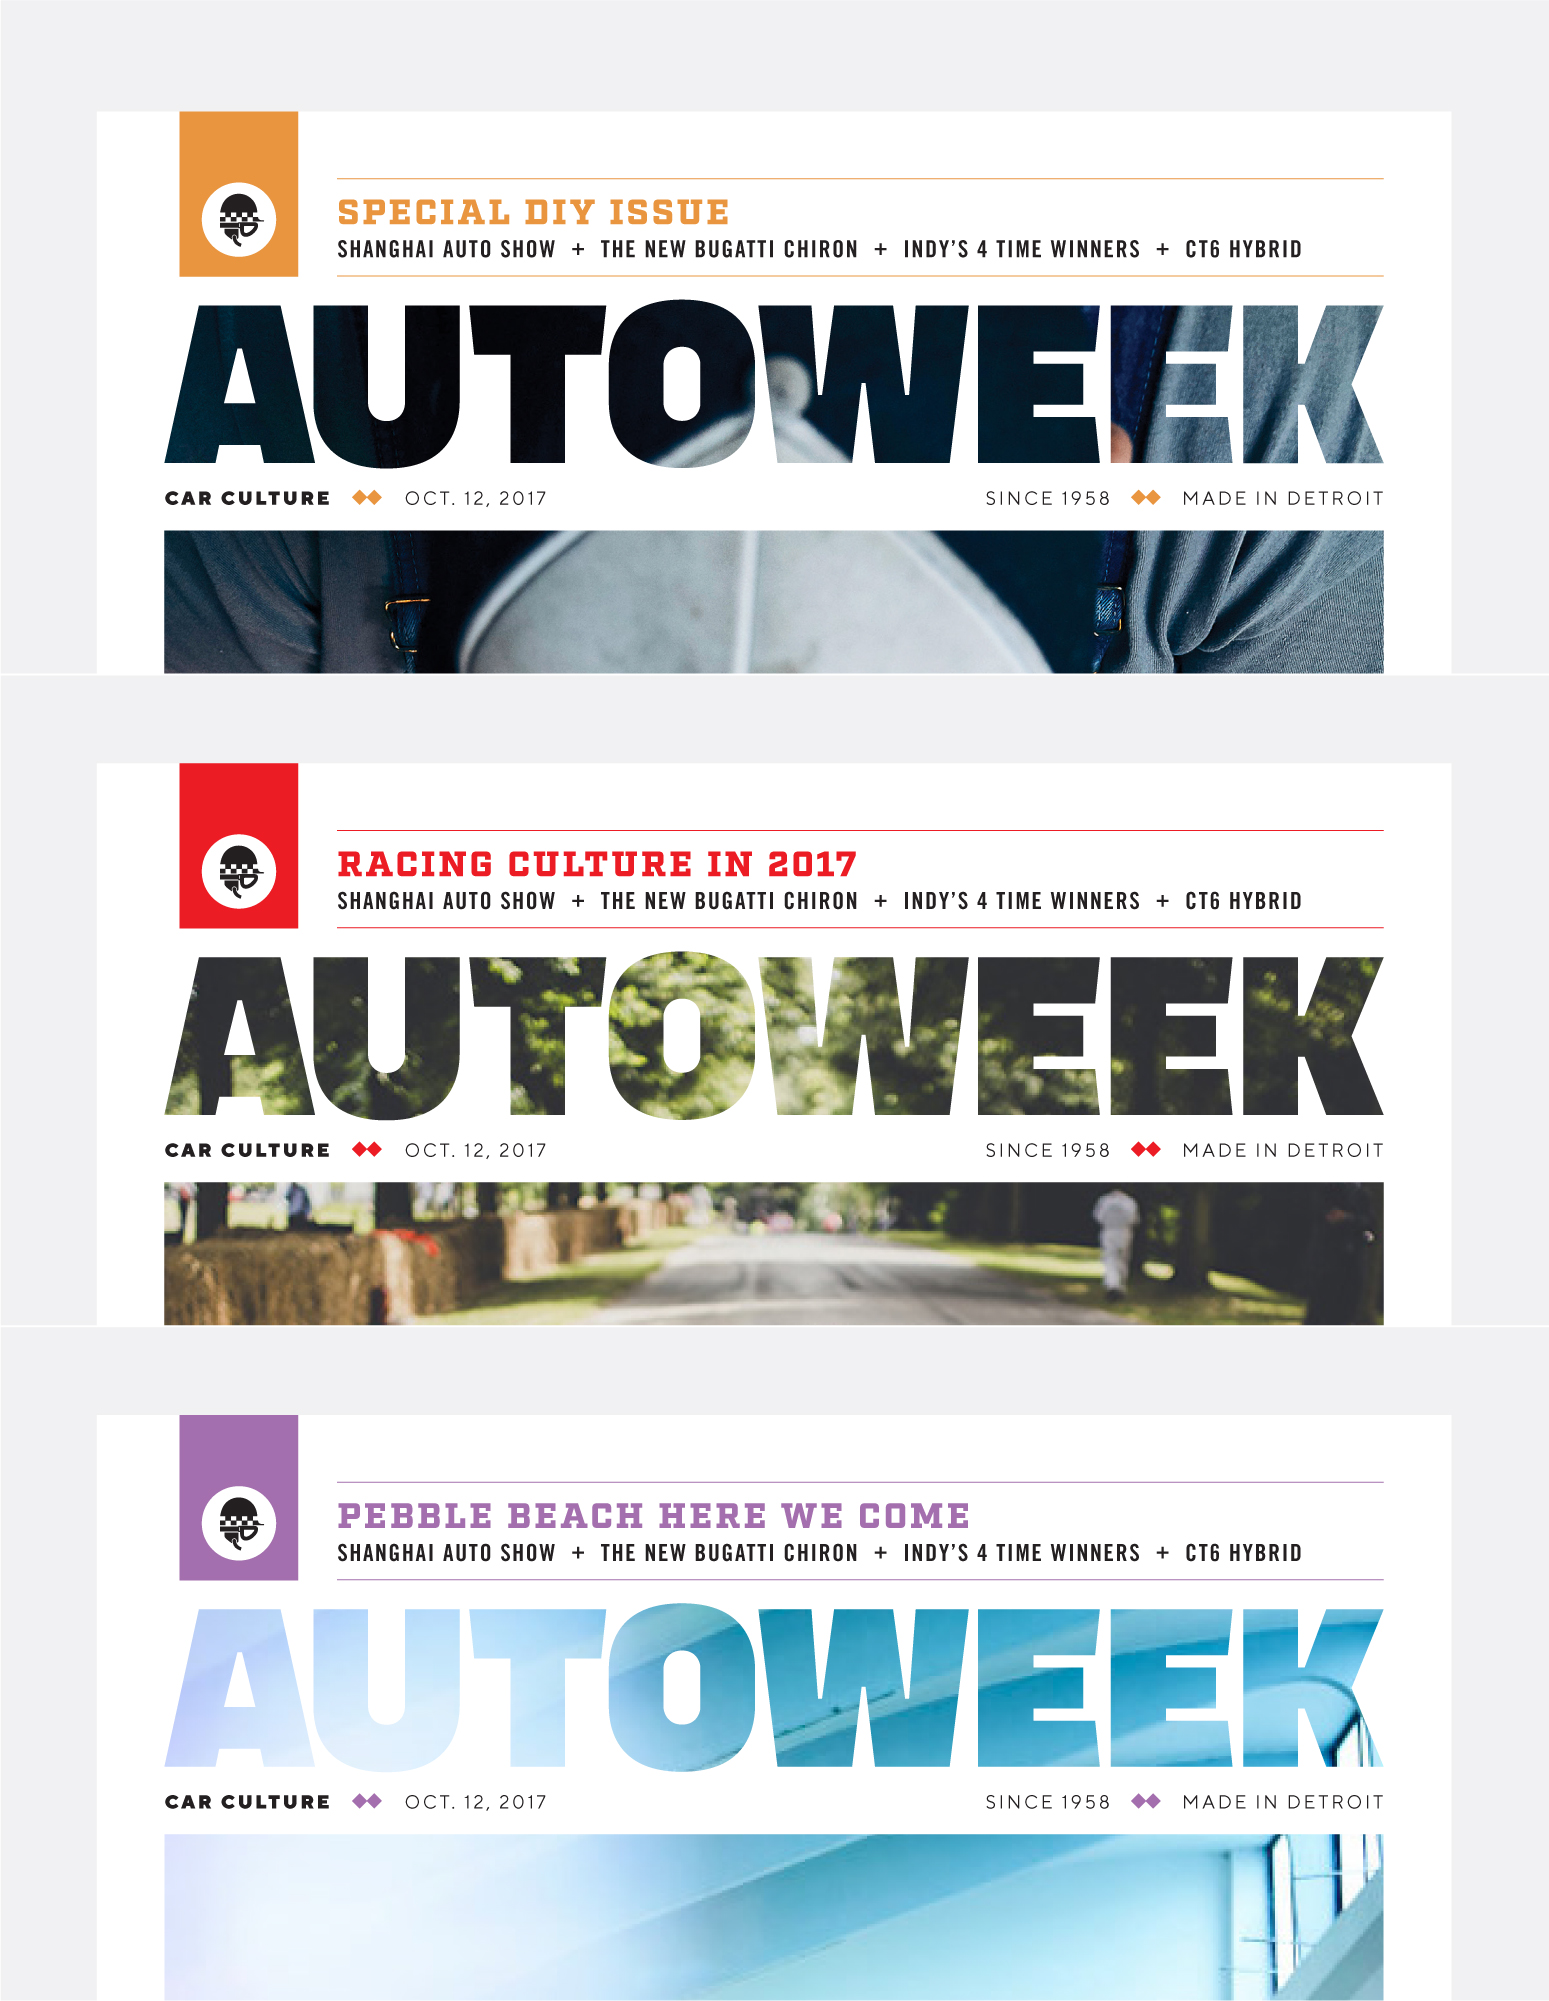 autoweek-masthead-treatment@2x-100.jpg